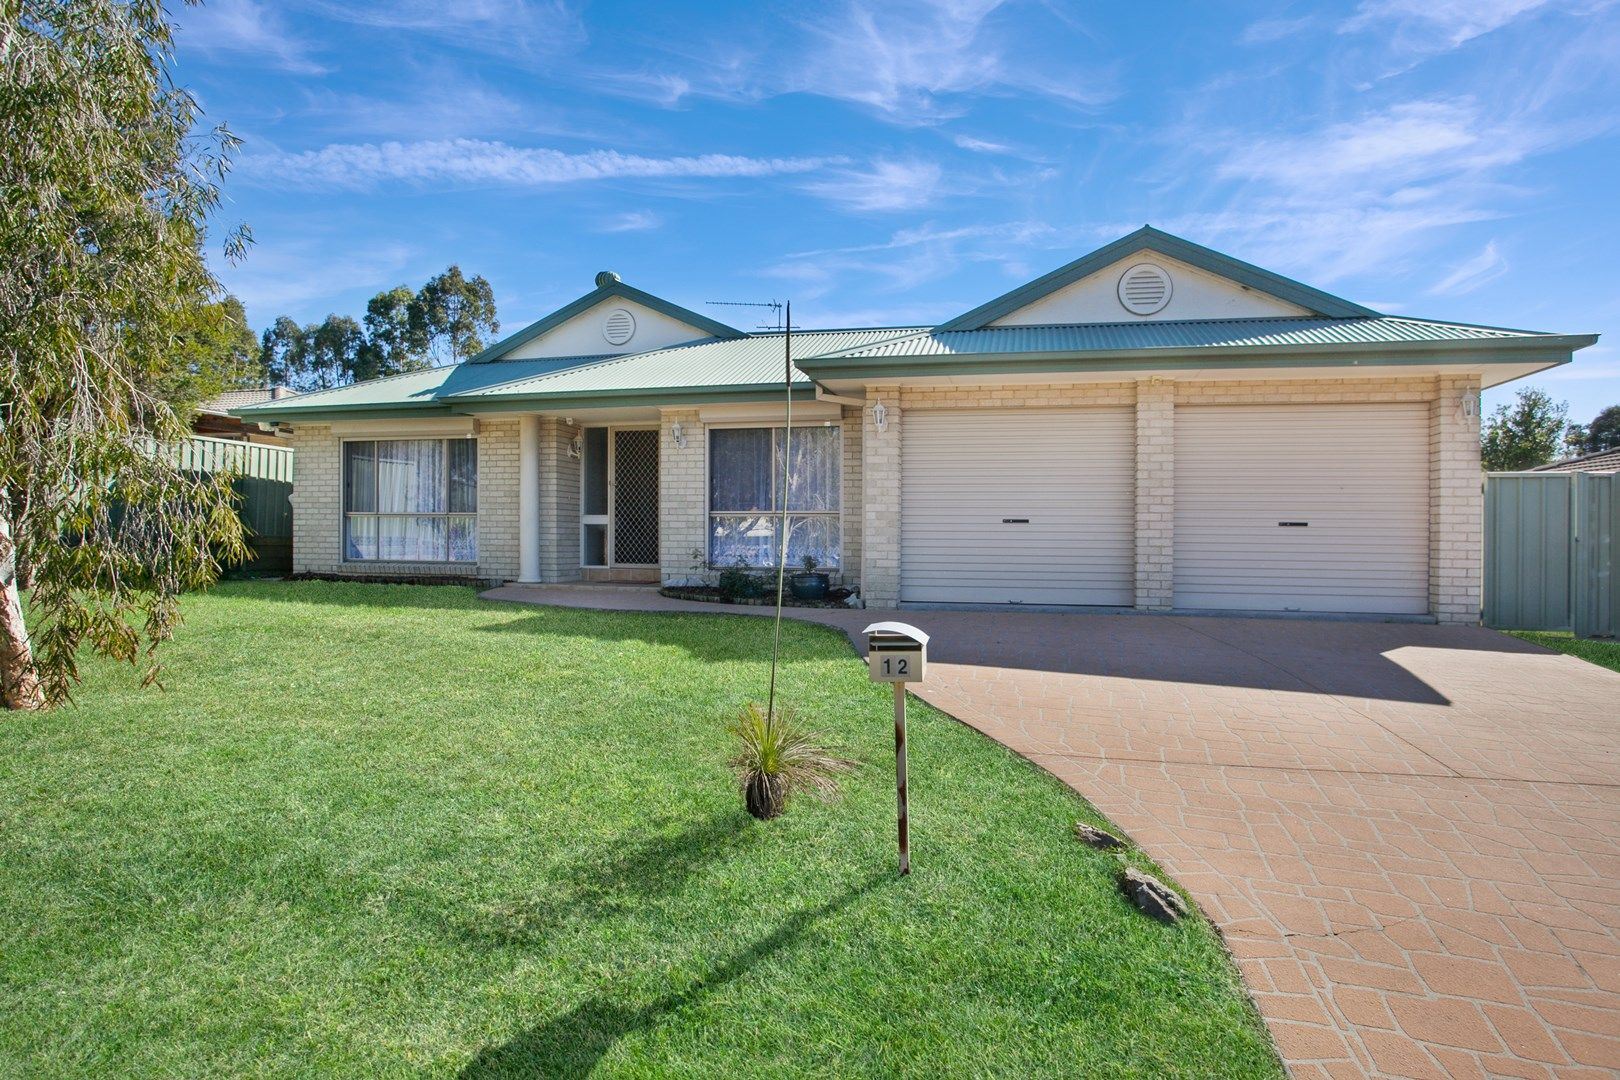 12 Ferraby Drive, Metford NSW 2323, Image 0